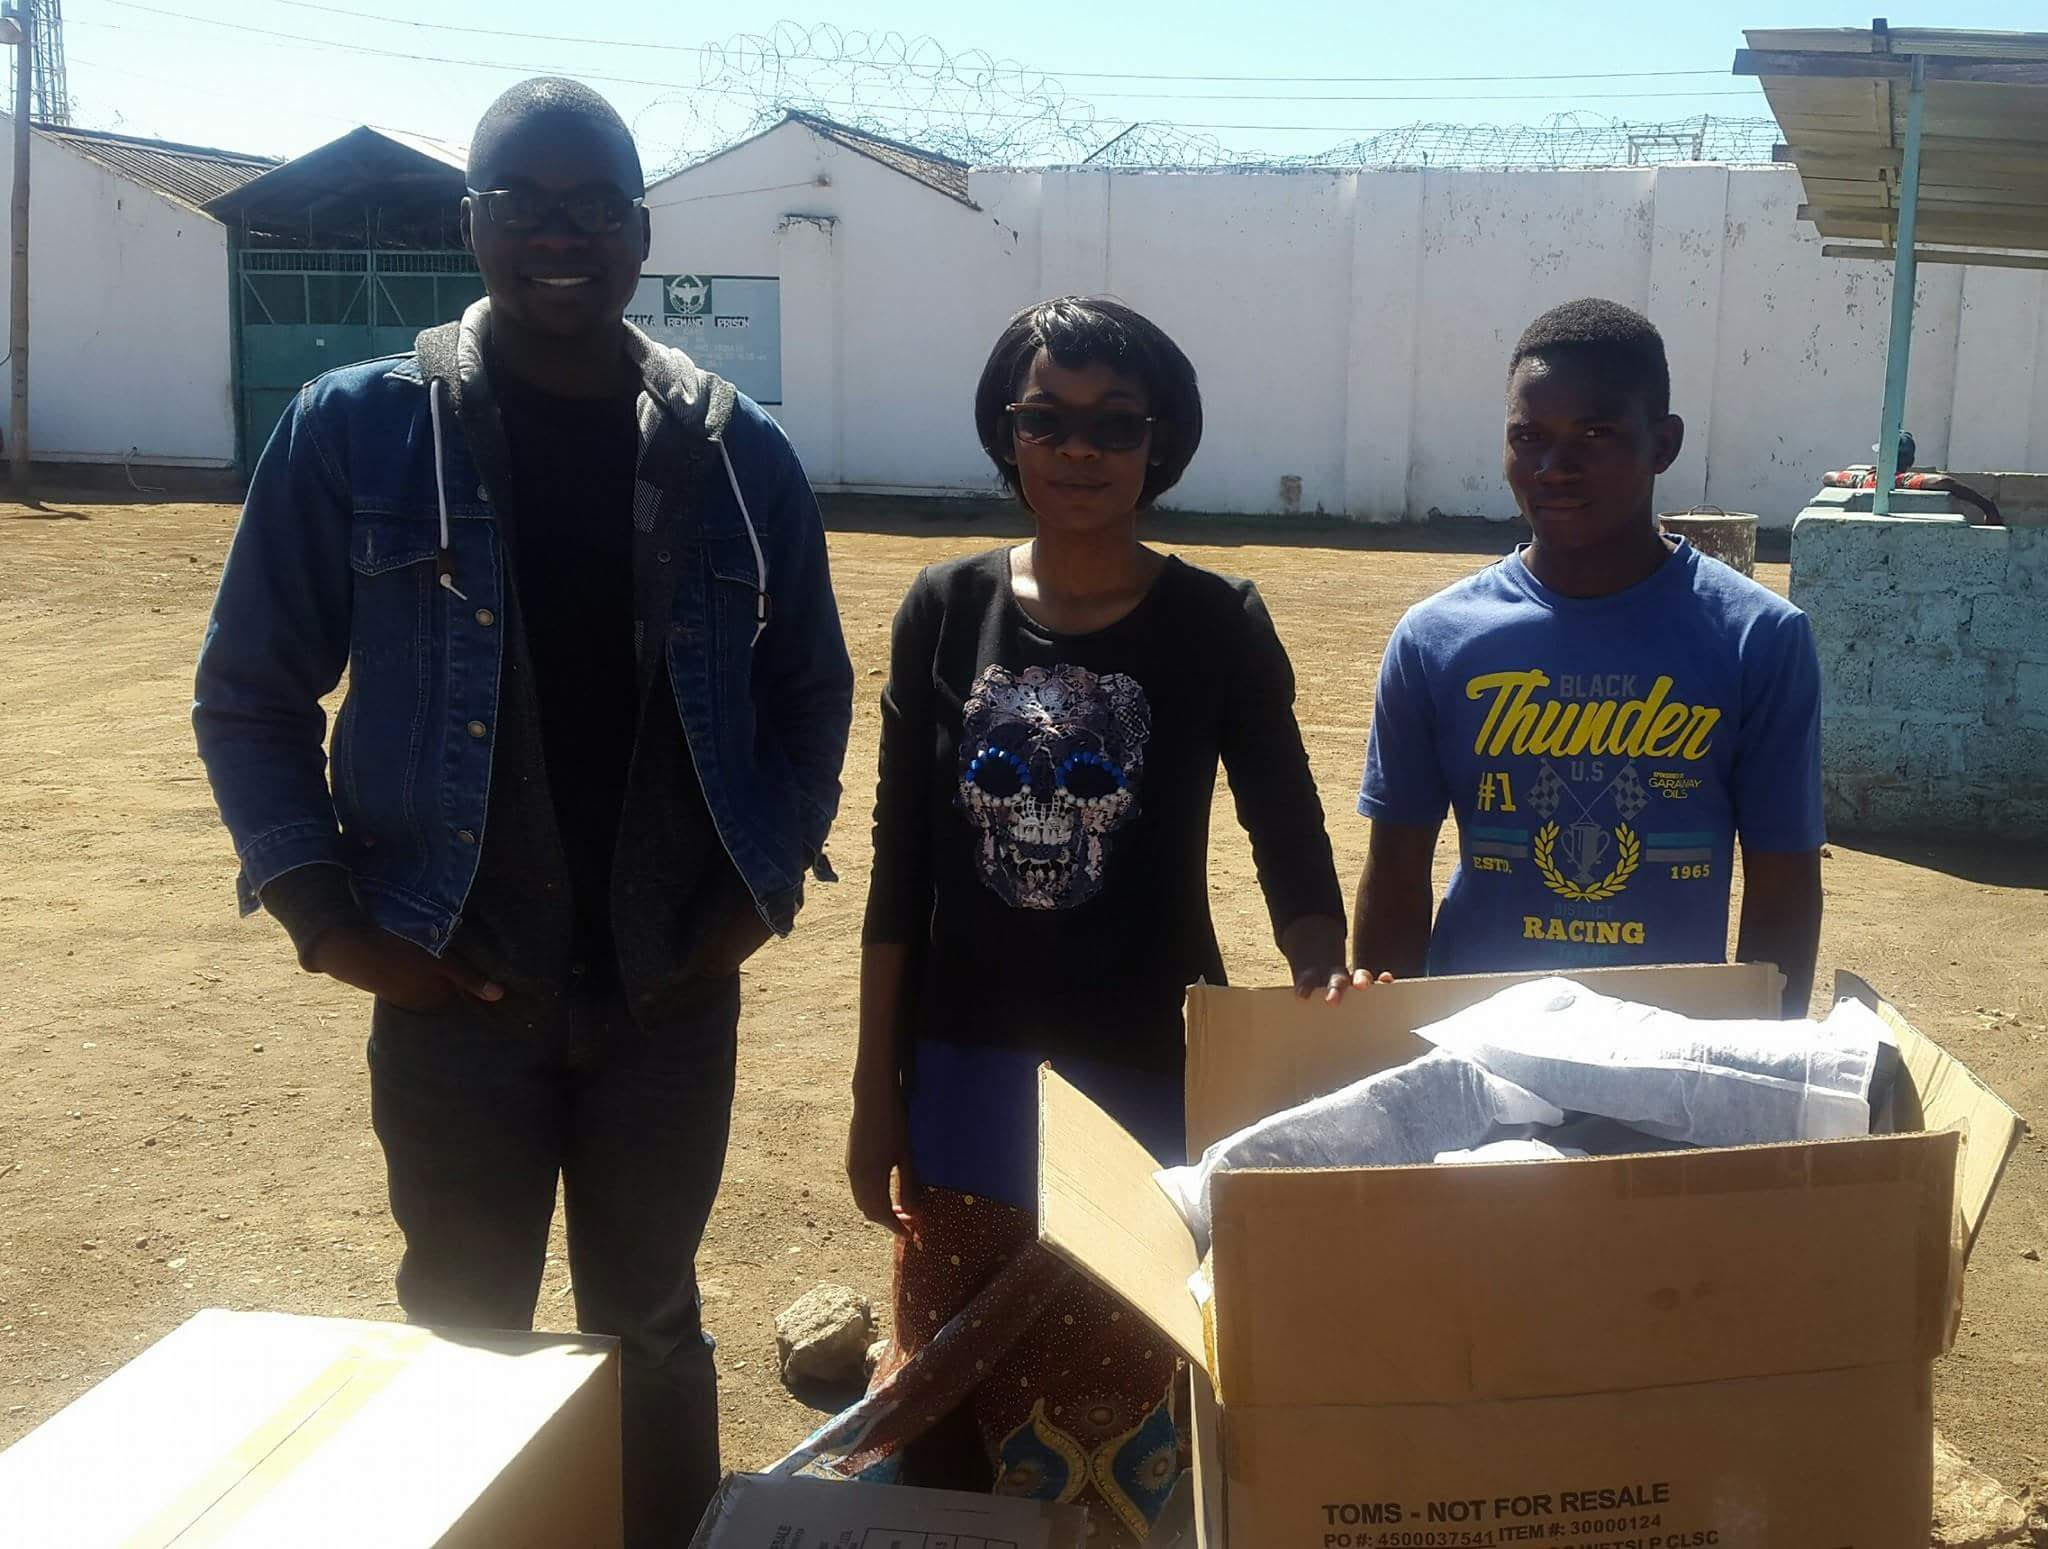 Faith and UP Zambia volunteers during a prison visit to distribute donations for incarcerated juveniles.